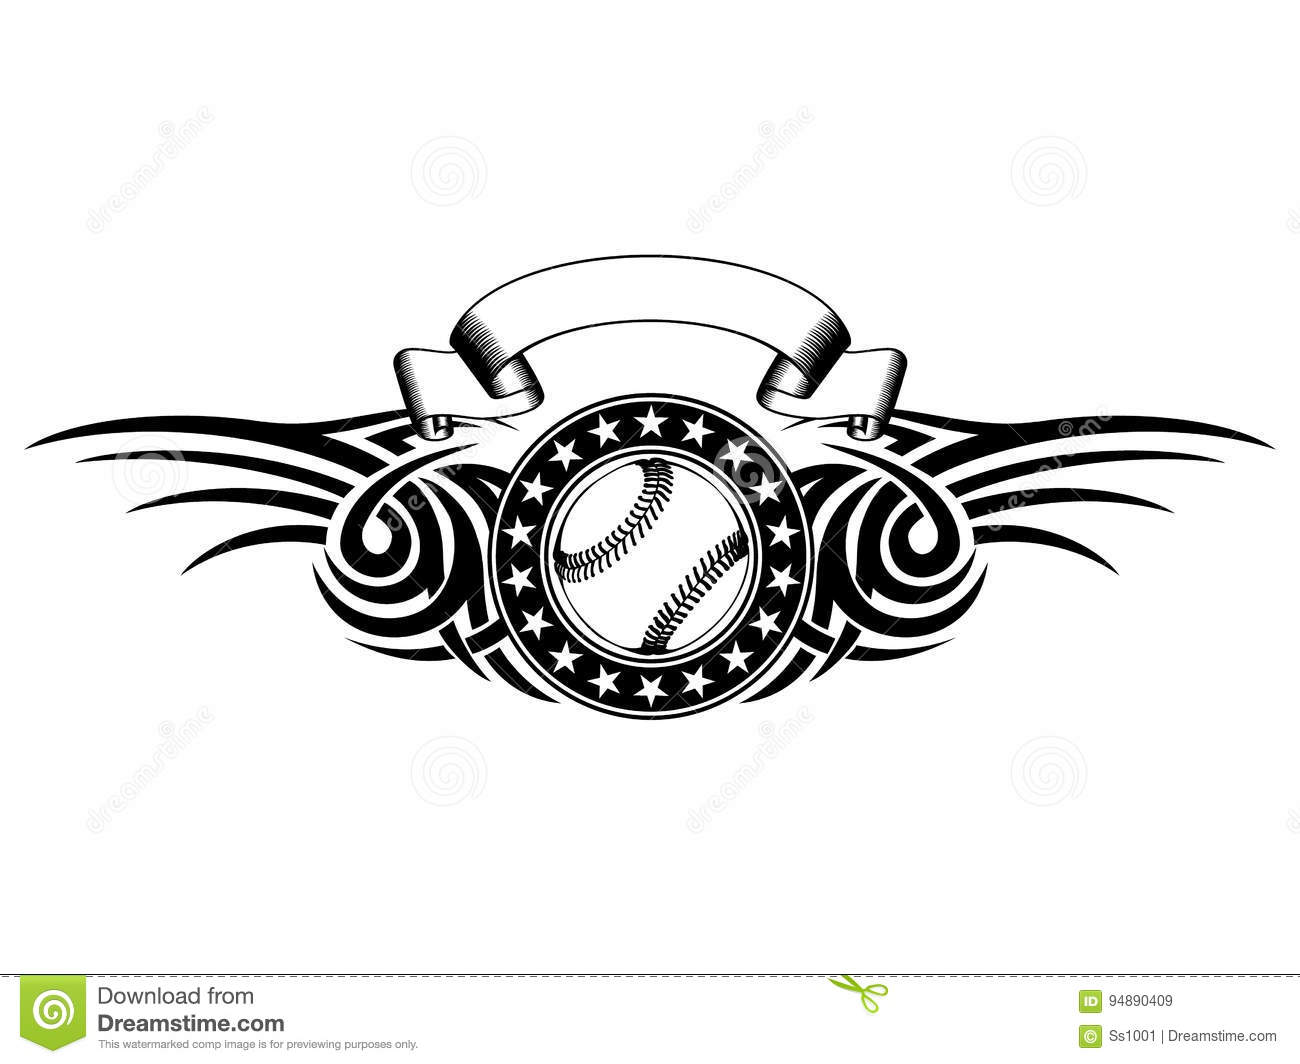 bbb12a11 Abstract vector illustration black and white baseball ball with tribal  wings. Design for tattoo or print t-shirt.